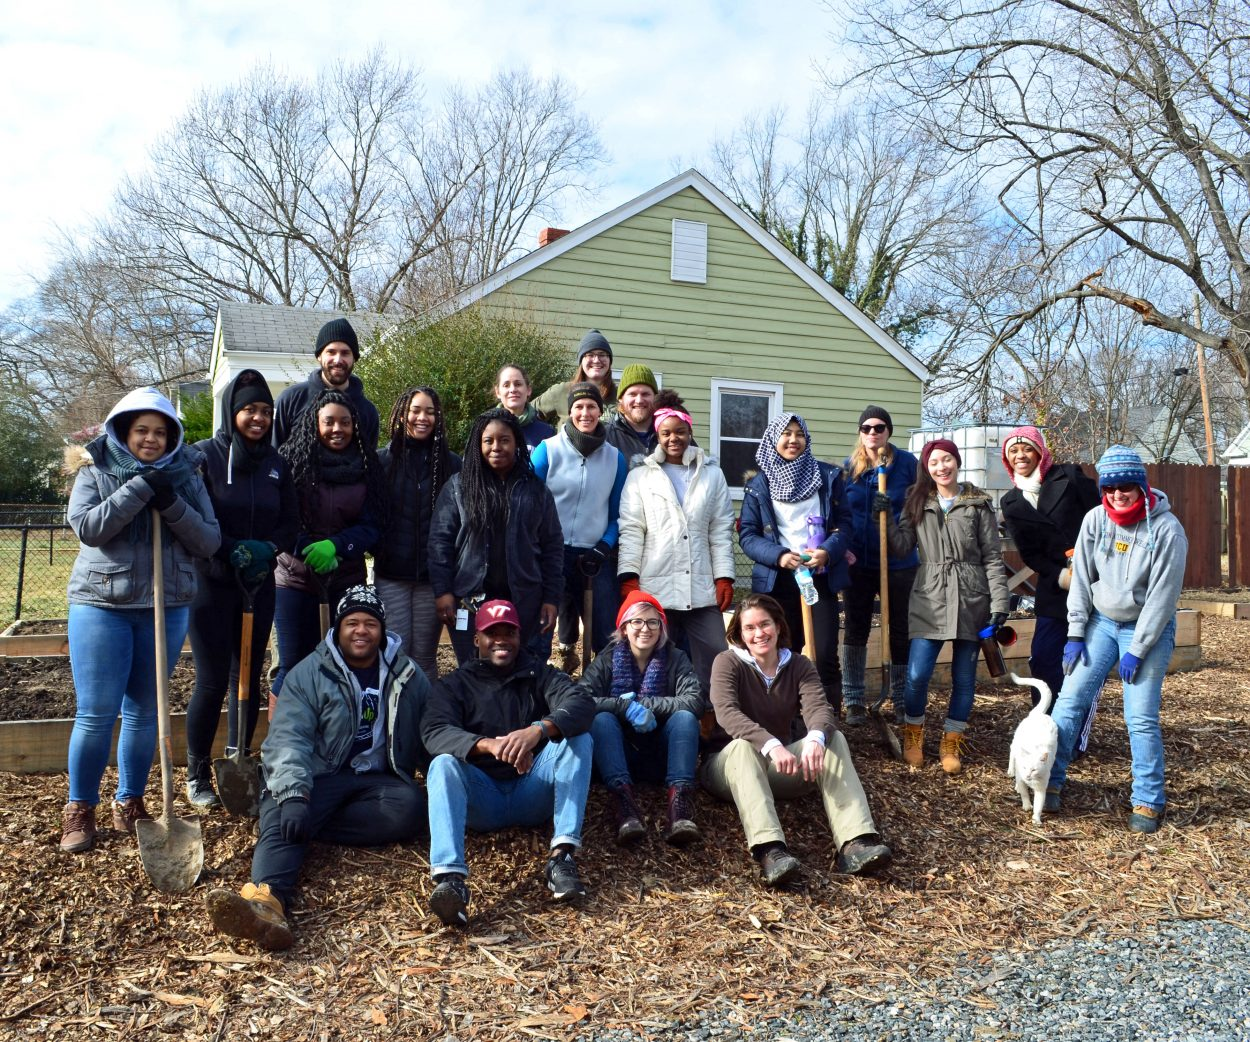 Group of volunteers poses together after building garden beds for an underserved neighborhood in urban Richmond